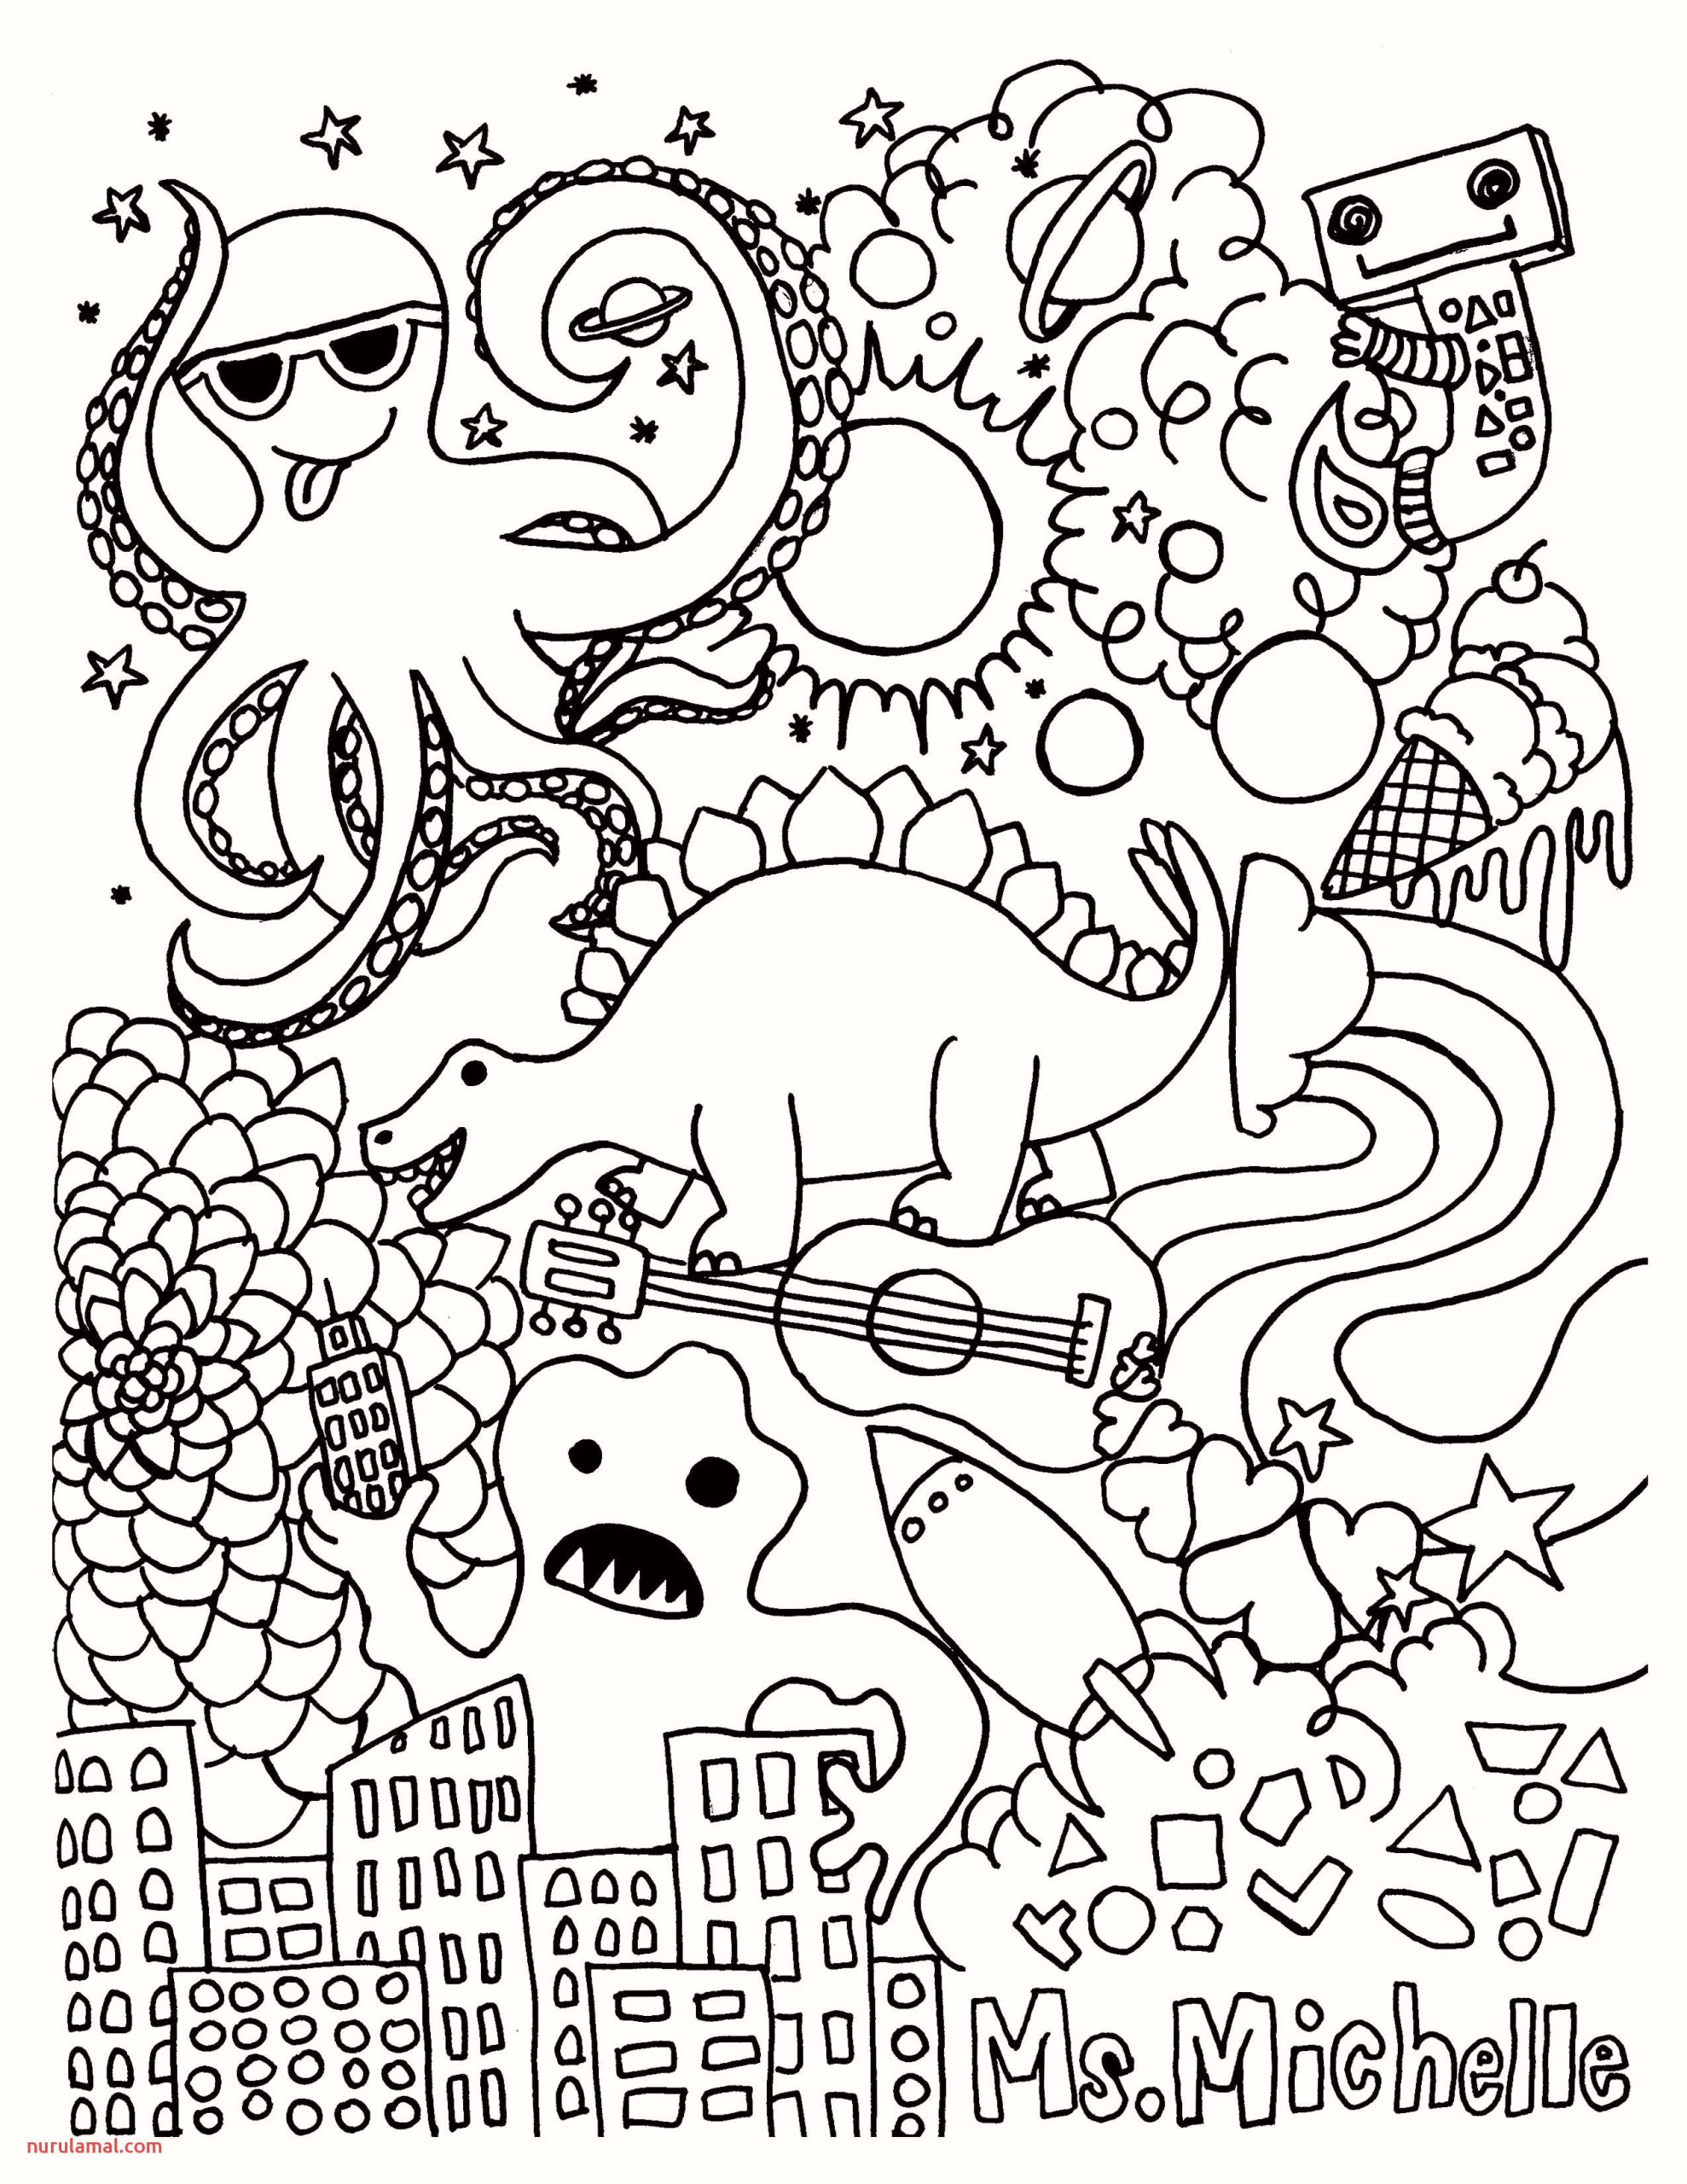 Christmas Colouring Pages Free Download Pusat Hobi